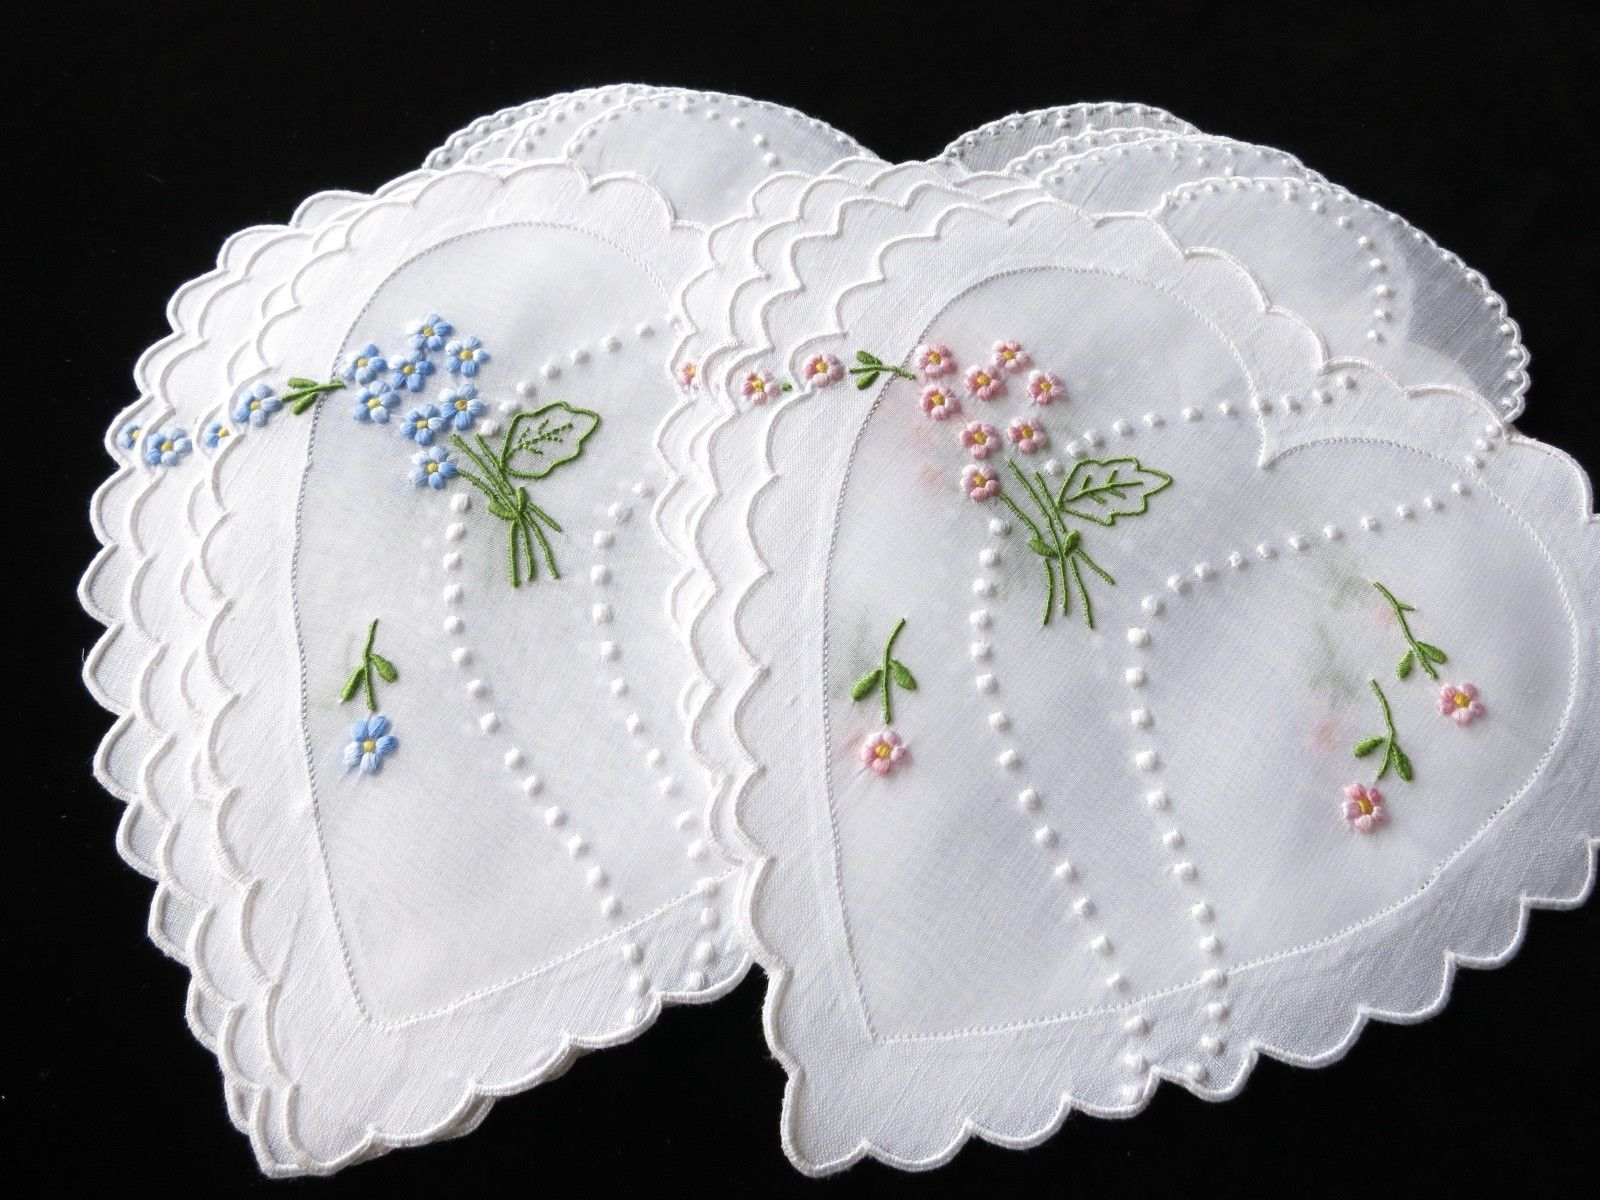 Hearts & Flowers Vintage Cocktail Napkins Madeira Hand Embroidery - Set of 8